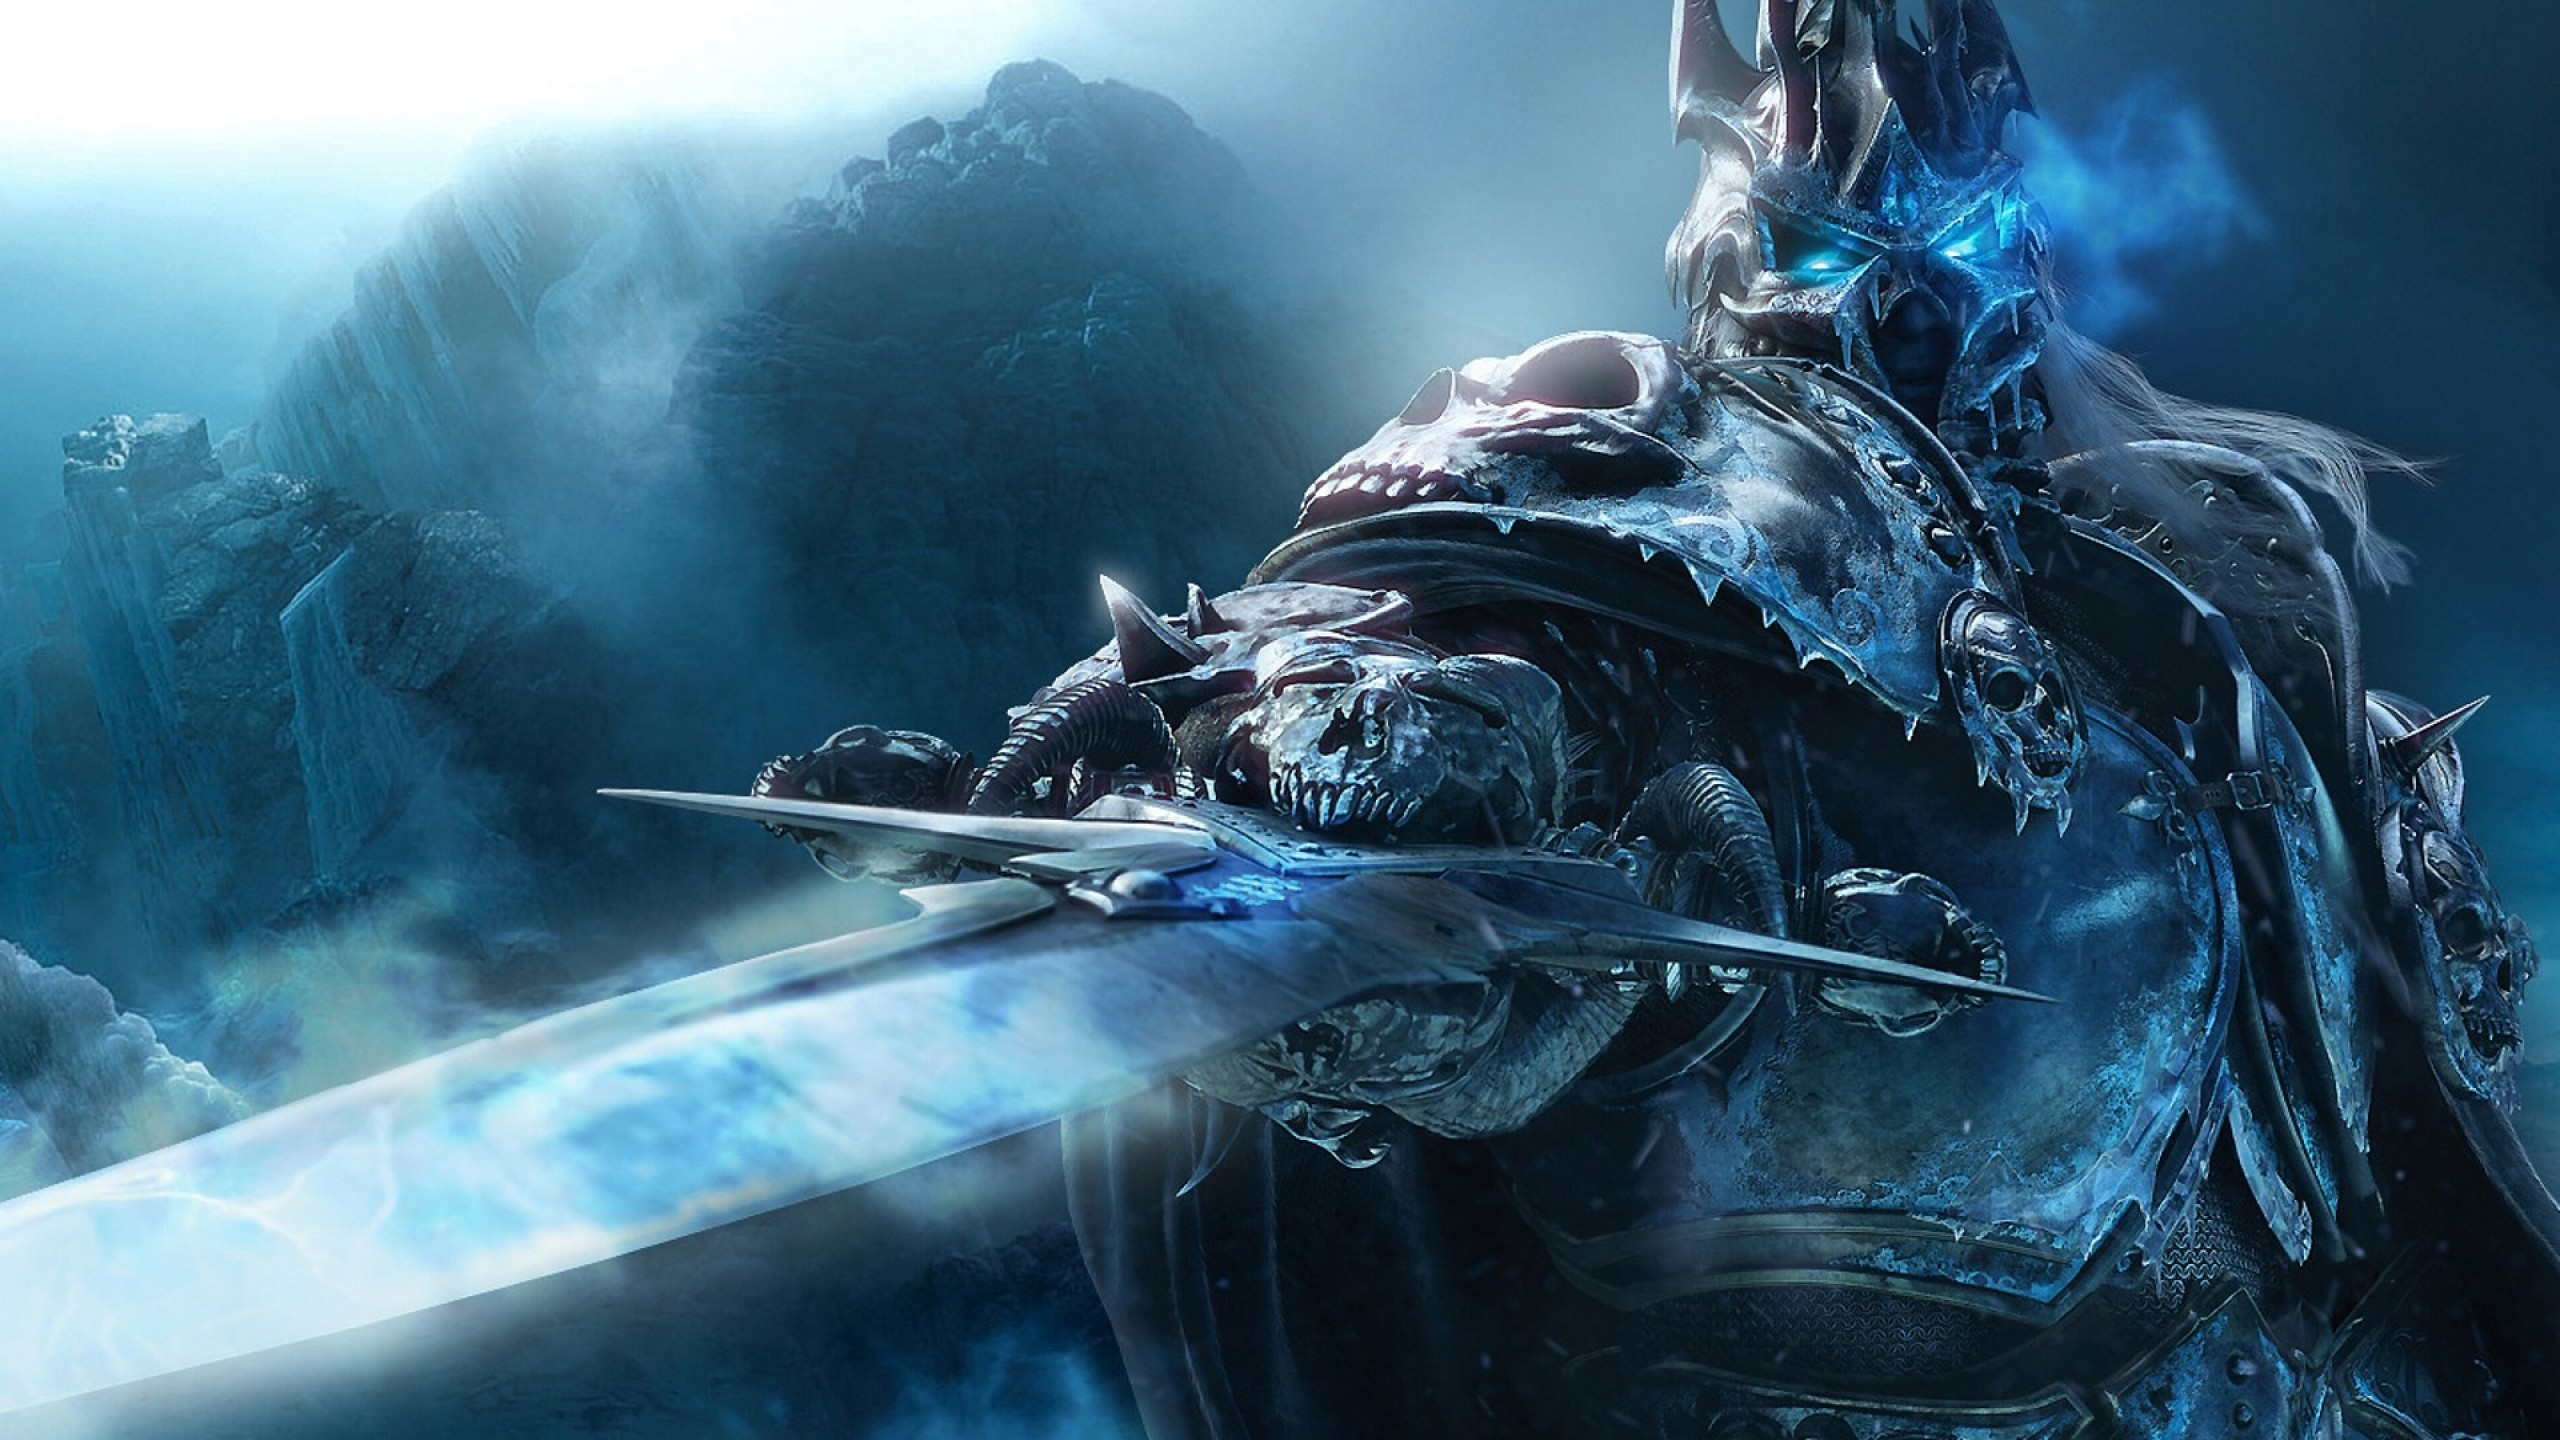 Cool Backgrounds Video Games 2560x1440 Wallpaper Teahub Io